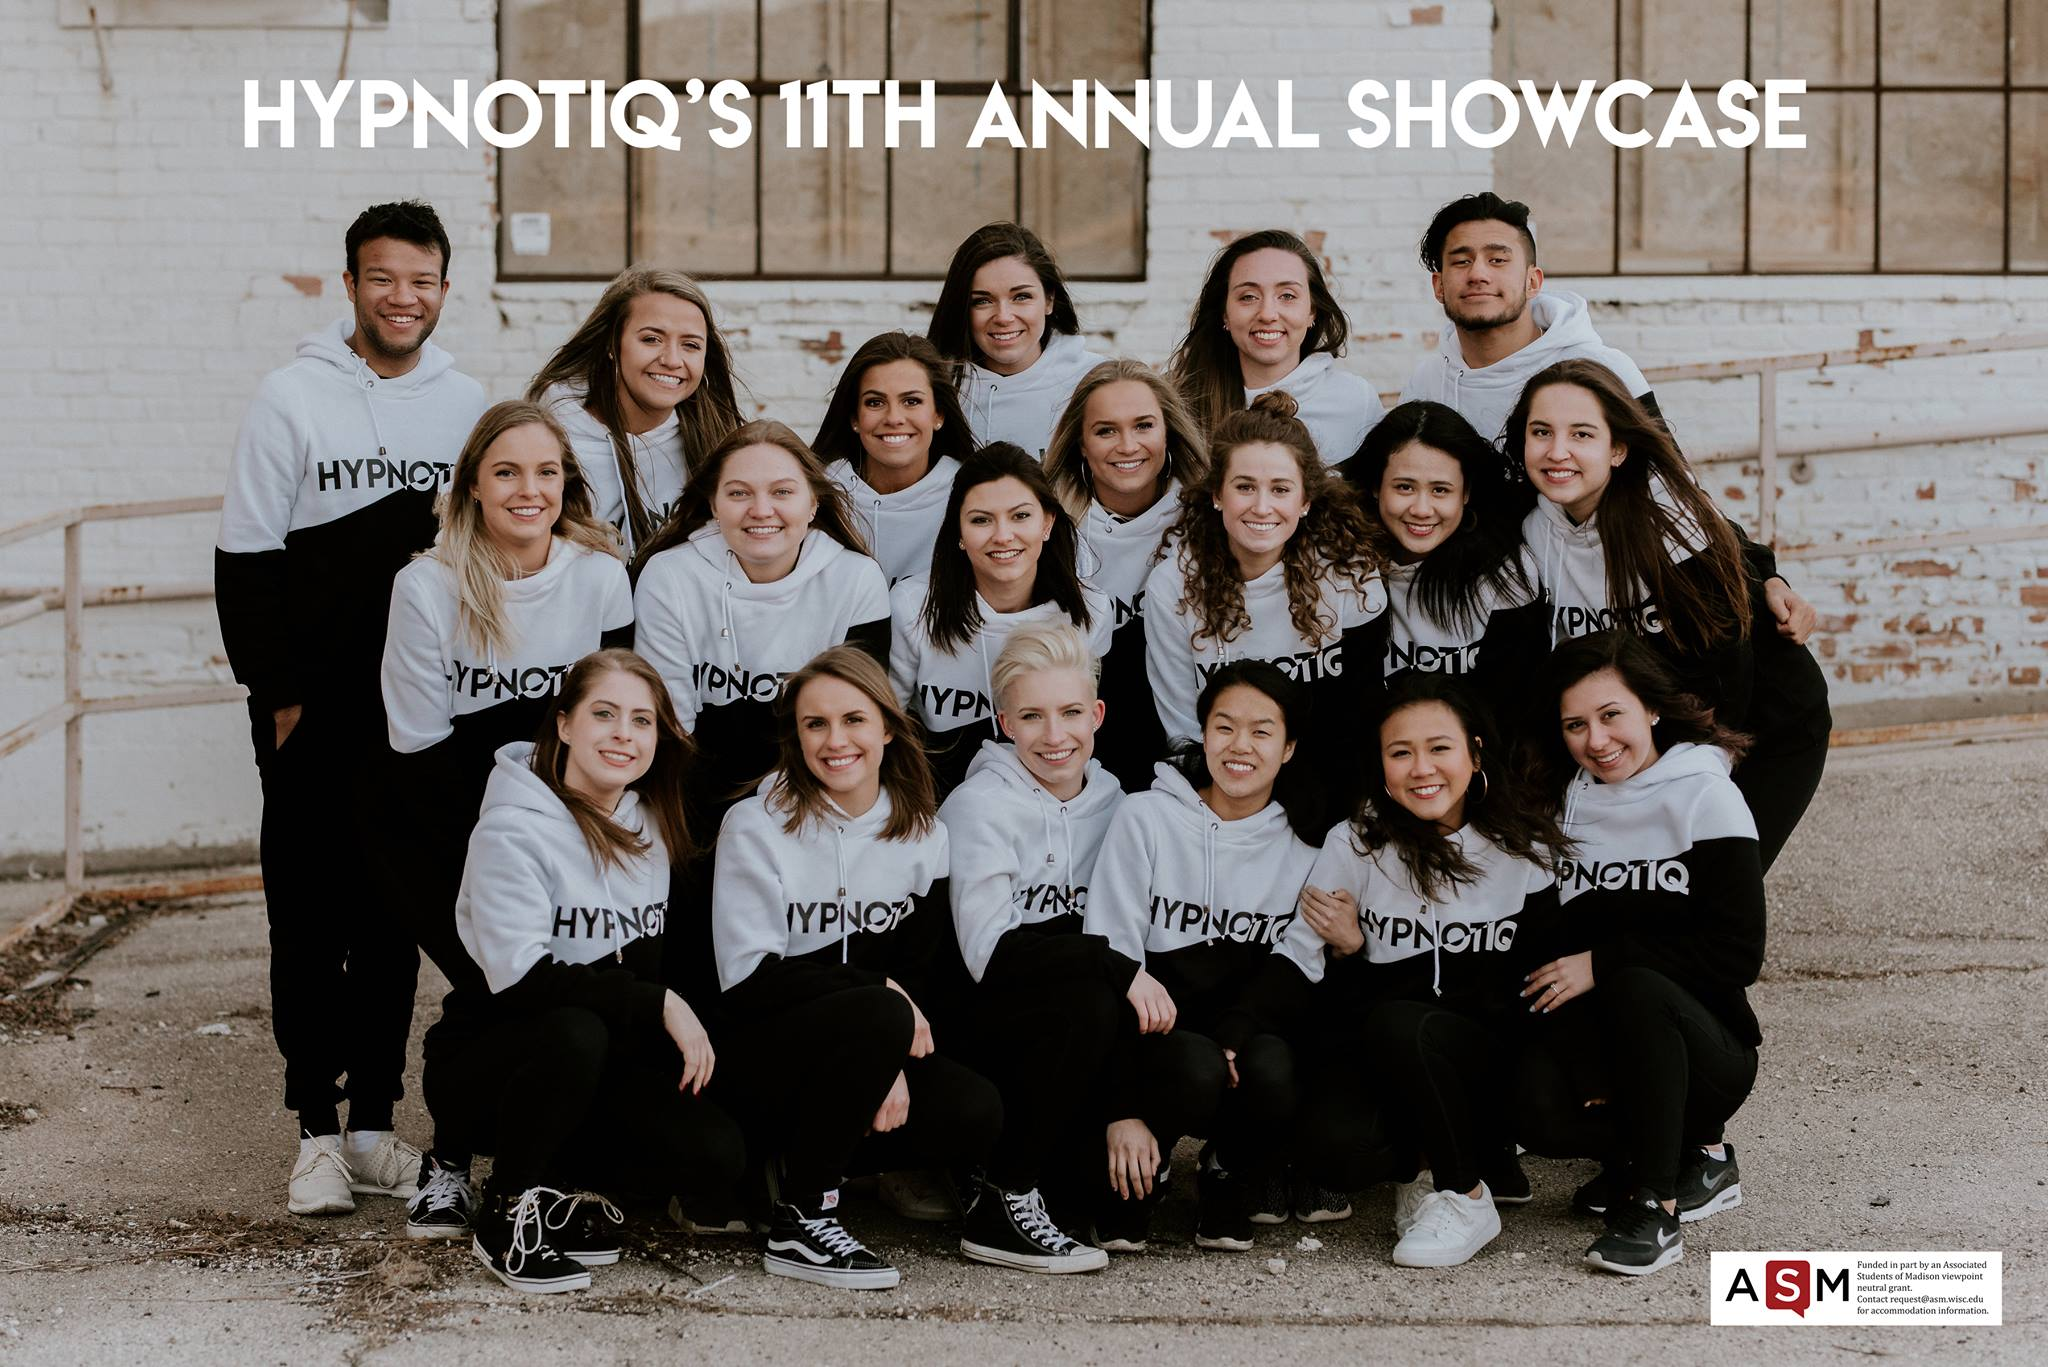 Hypnotiq's 11th Annual Showcase Slider Image